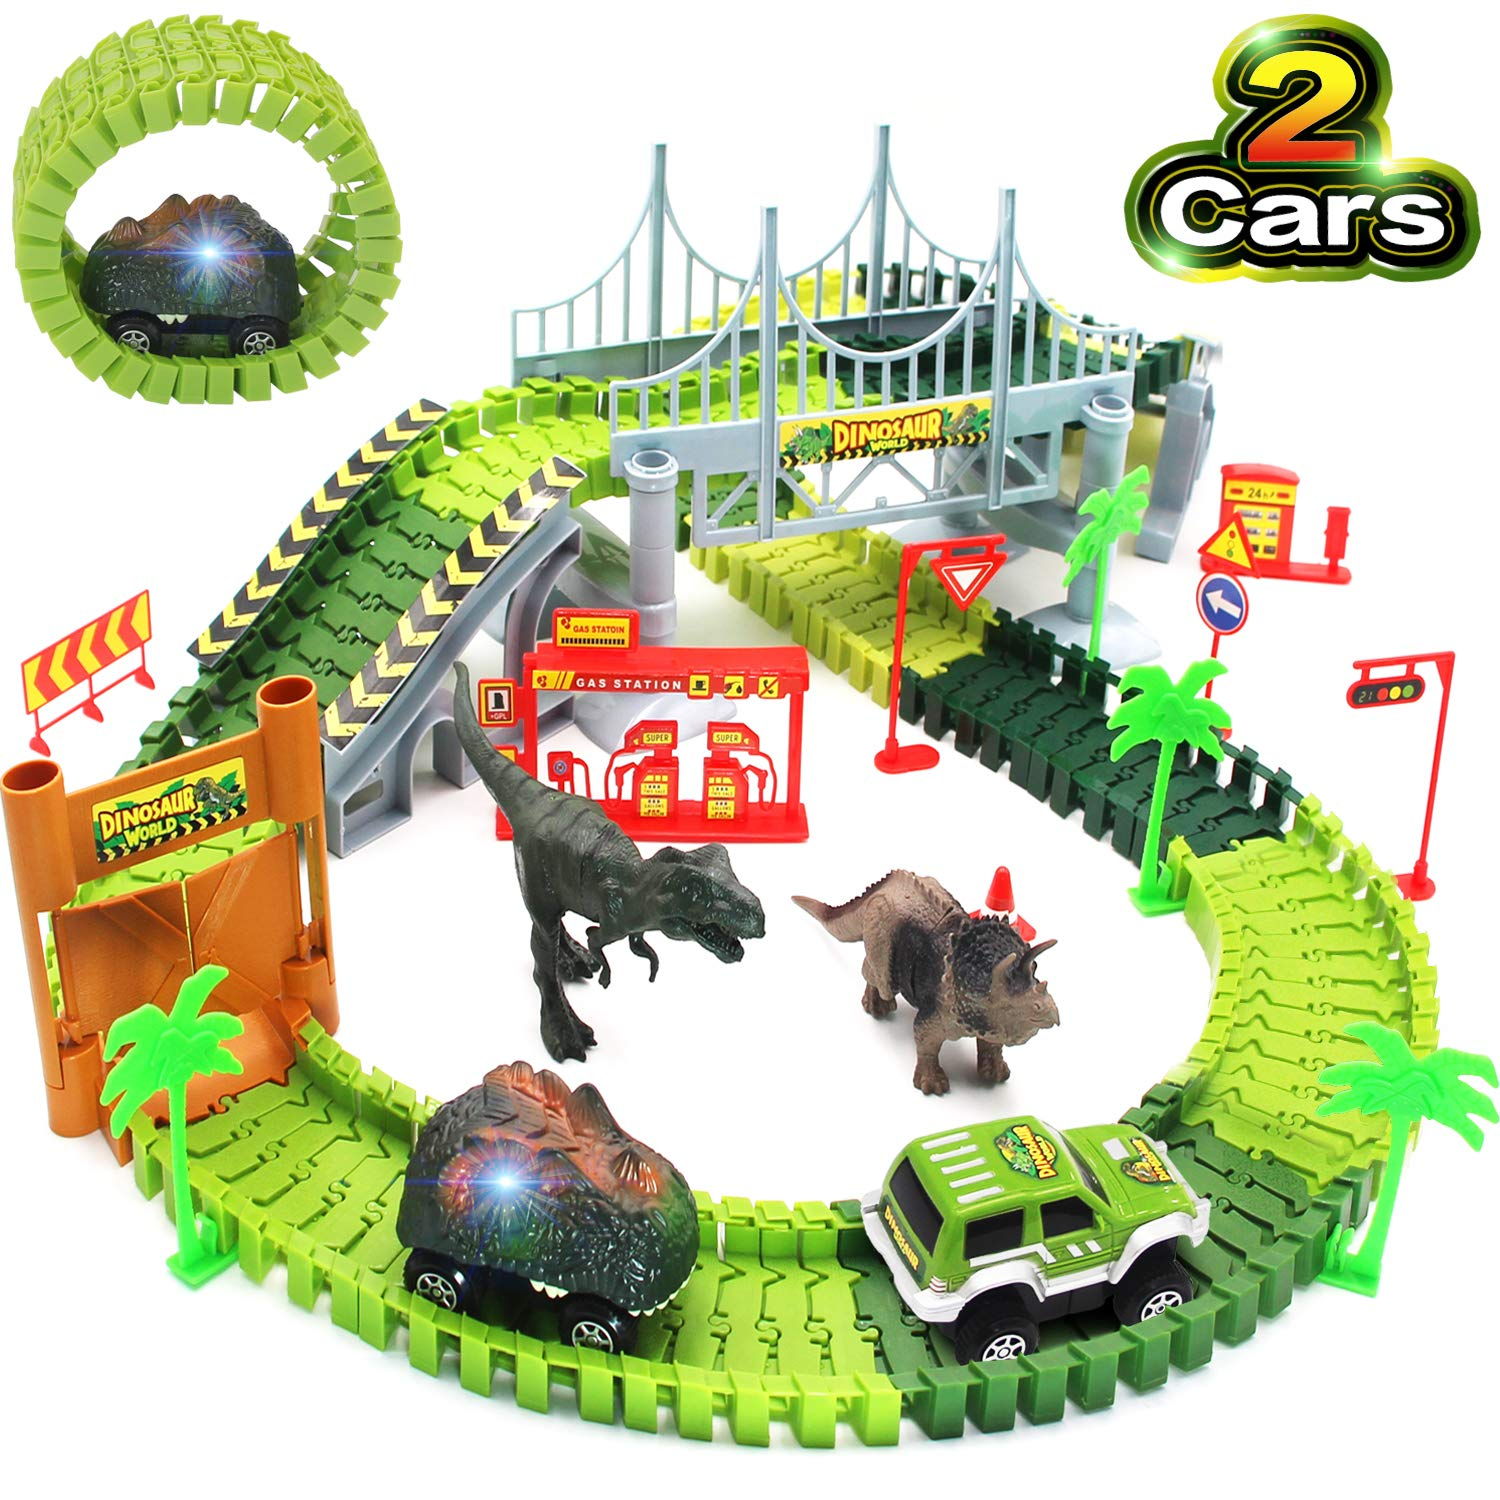 Bdwing Dinosaur Race Car Track Toys, Flexible Assembly Car Tracks Train Set for Boys Girls Toddlers and Kids (Extra 1 Set Traffic Signs) Best Gift for 2 3 4 5 Years Old